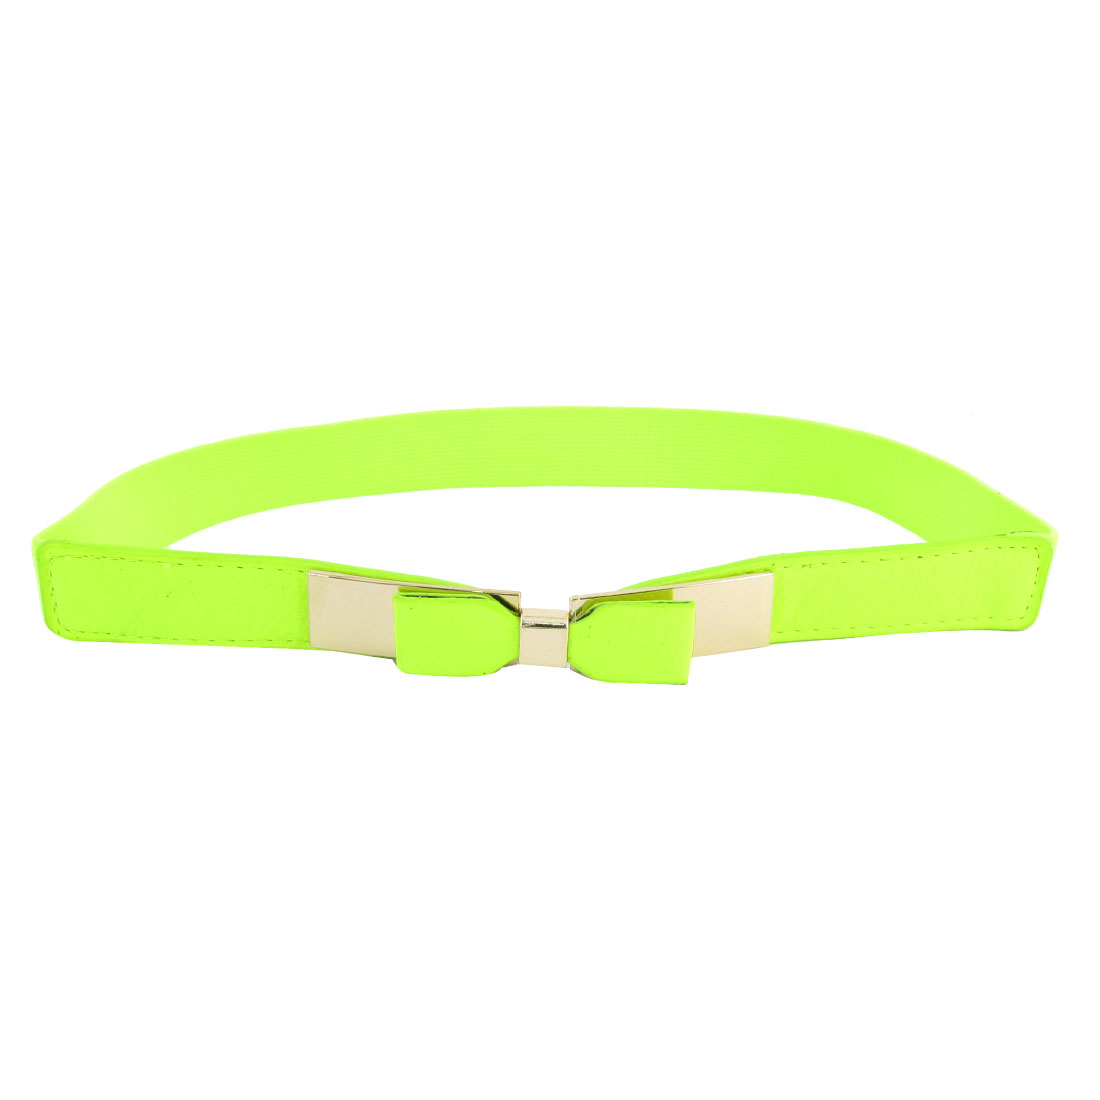 Bowknot Decor Metal Buckle 2.3cm Wide Textured Elastic Cinch Band Yellow Green